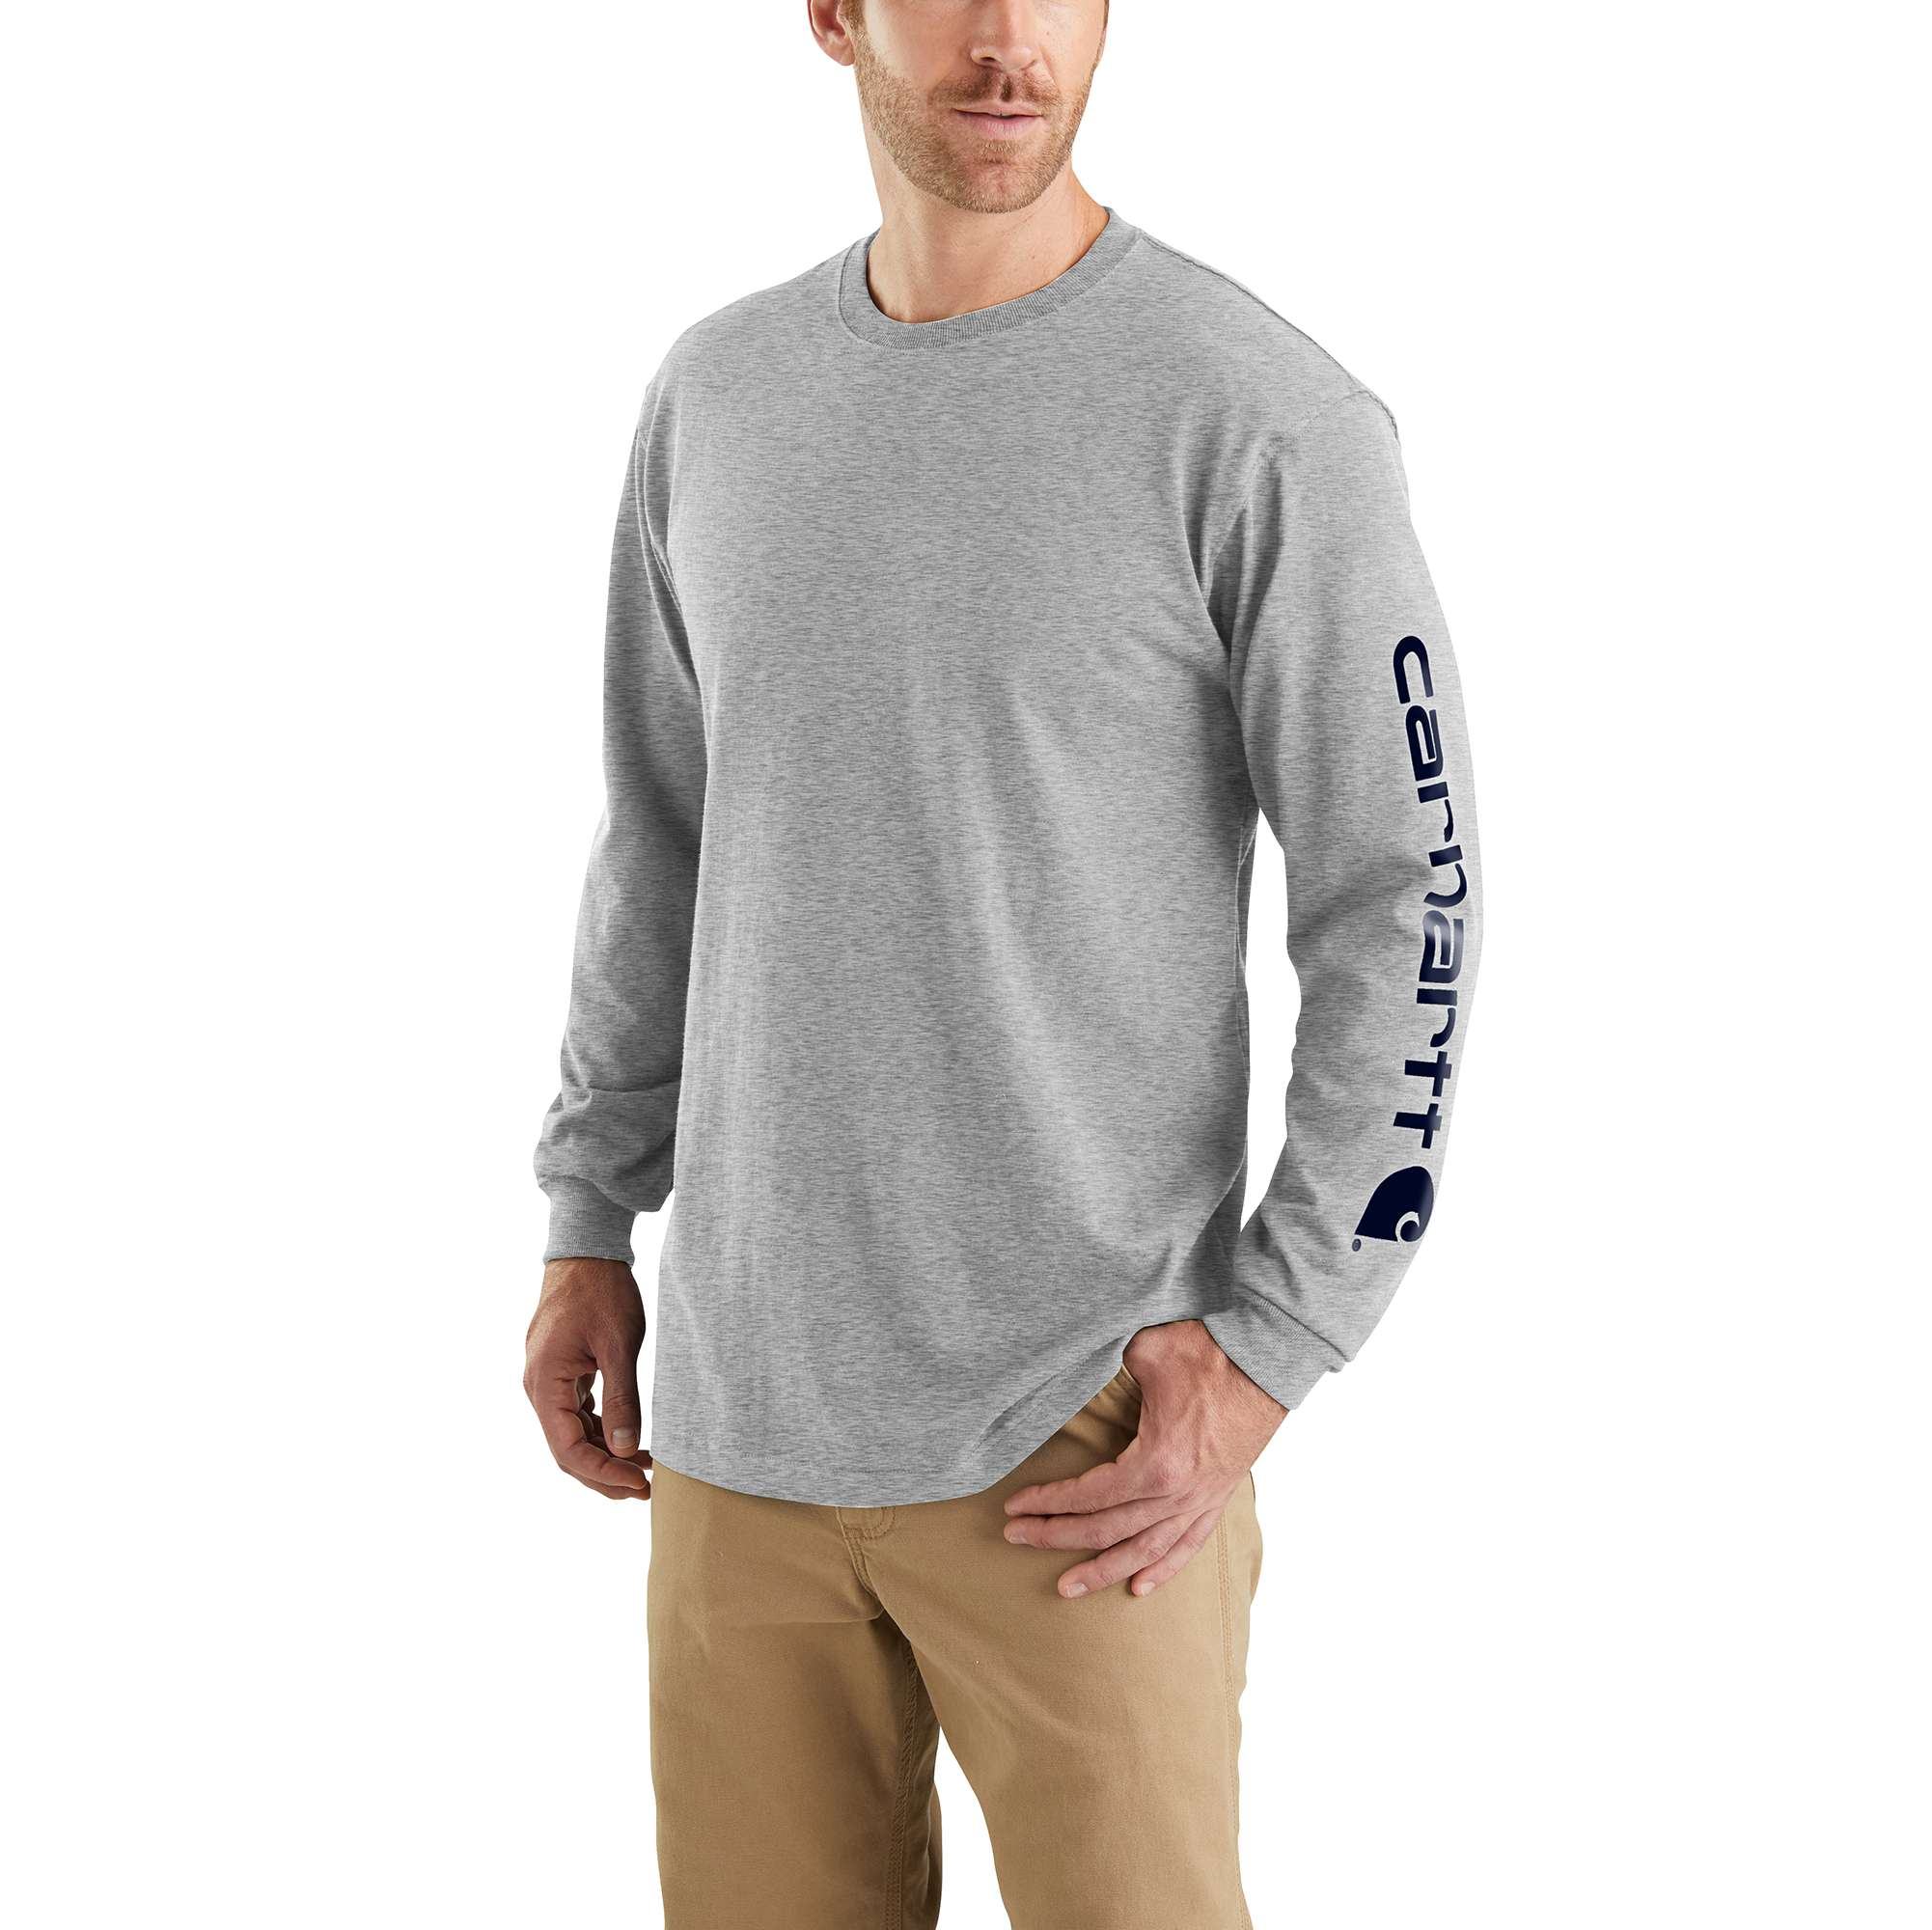 Men's Workwear Long-Sleeve Graphic Logo T-Shirt, Heather Gray, swatch